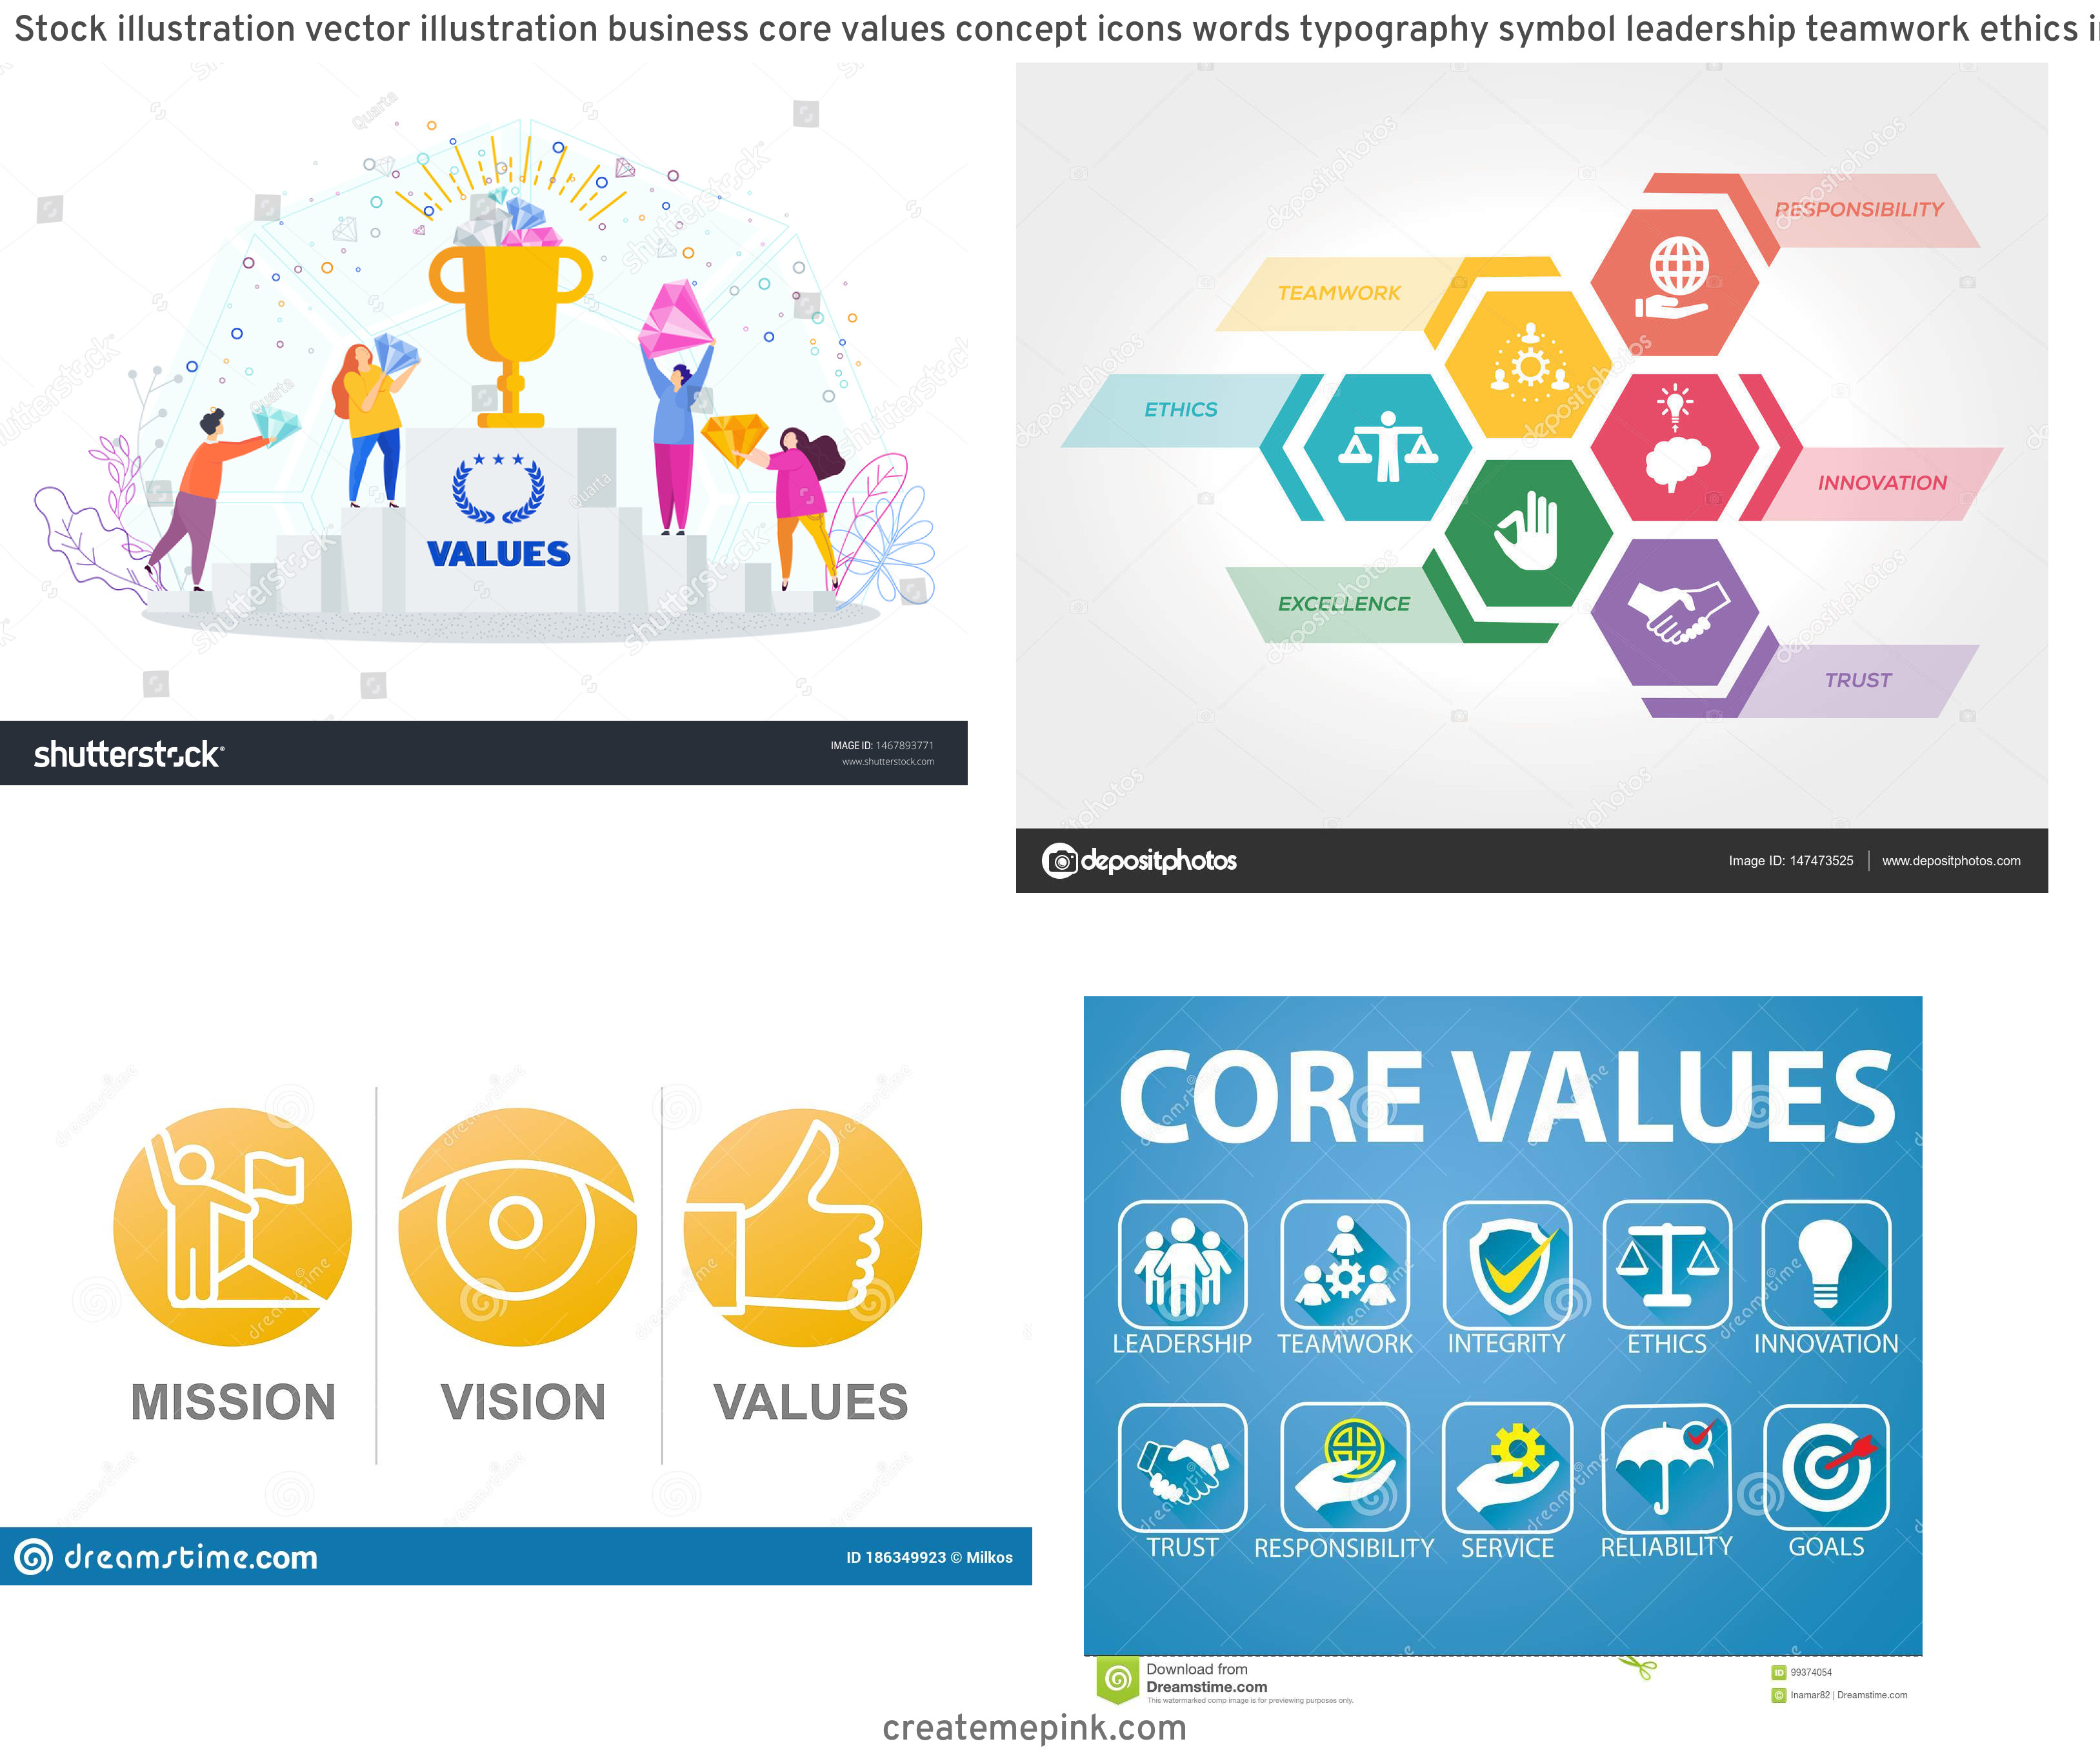 Vector Graphics Values: Stock Illustration Vector Illustration Business Core Values Concept Icons Words Typography Symbol Leadership Teamwork Ethics Integrity Image